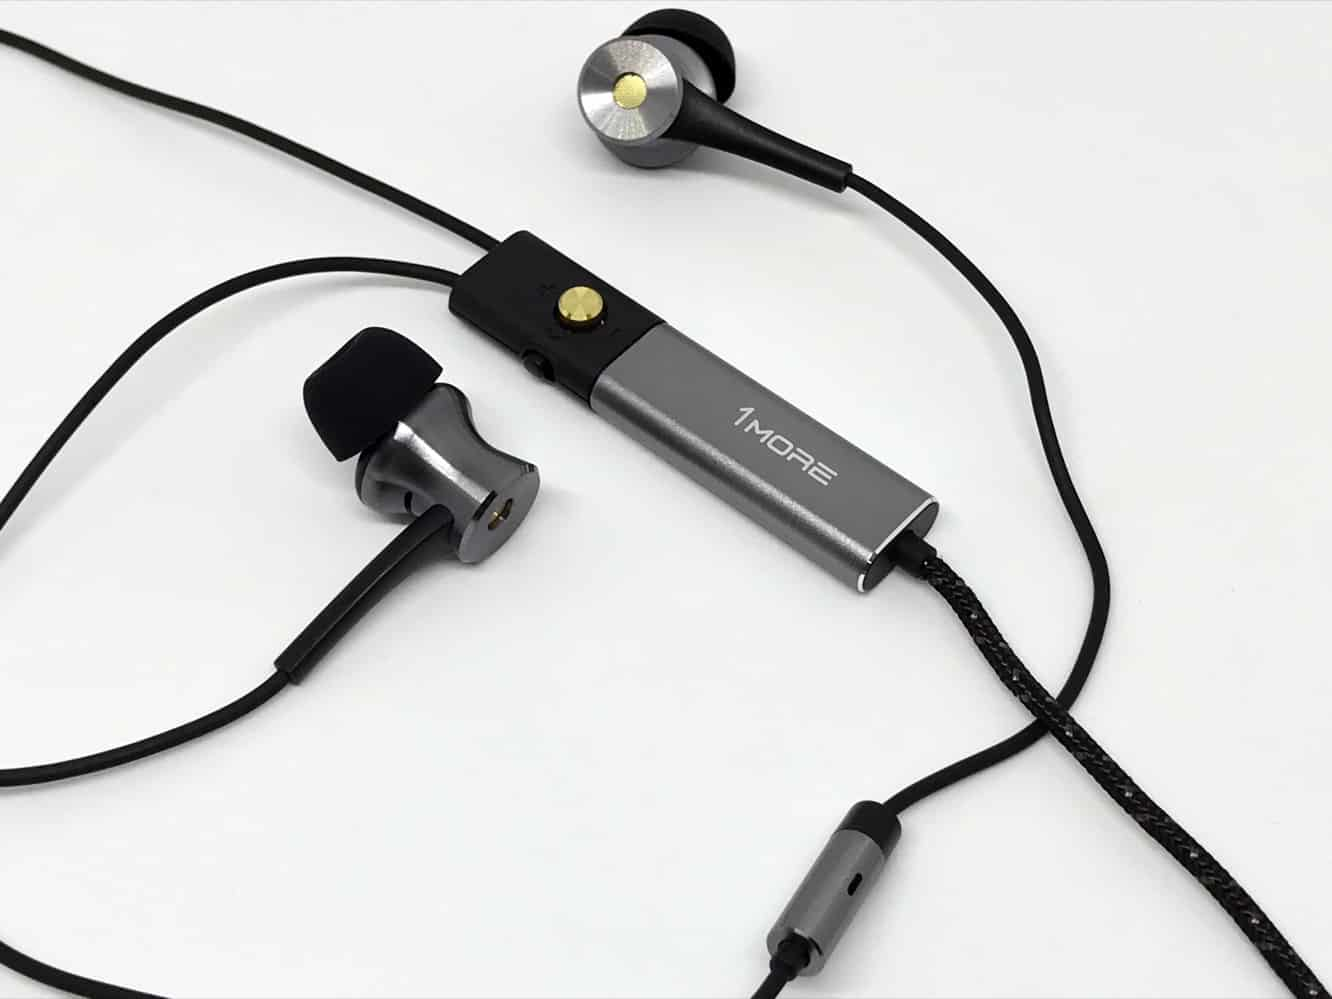 Review: 1More Dual Driver ANC Lightning In-Ear Headphones